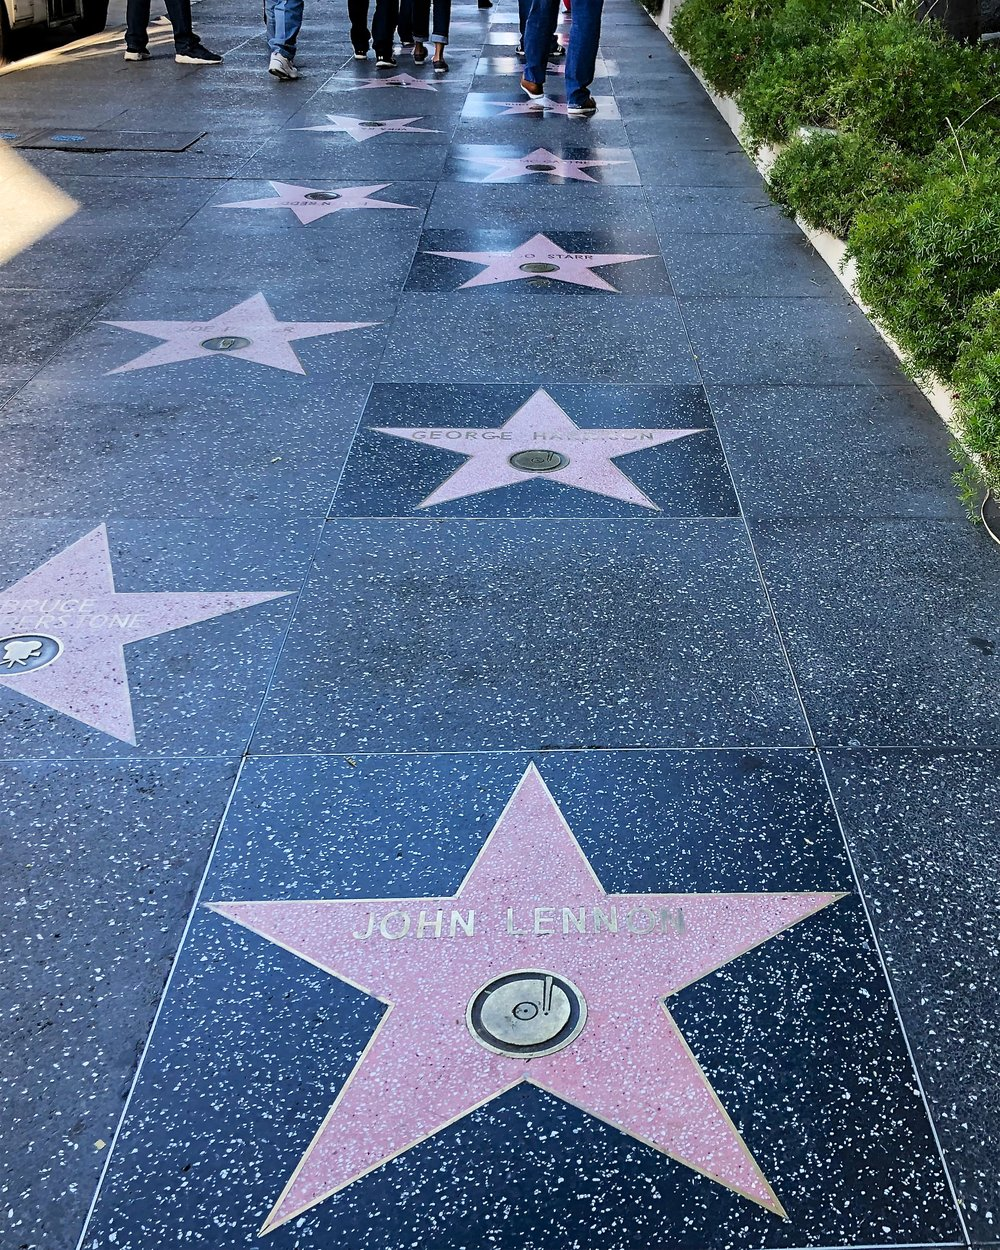 Stars for John Lennon, George Harrison, Ringo Starr, Paul McCartney